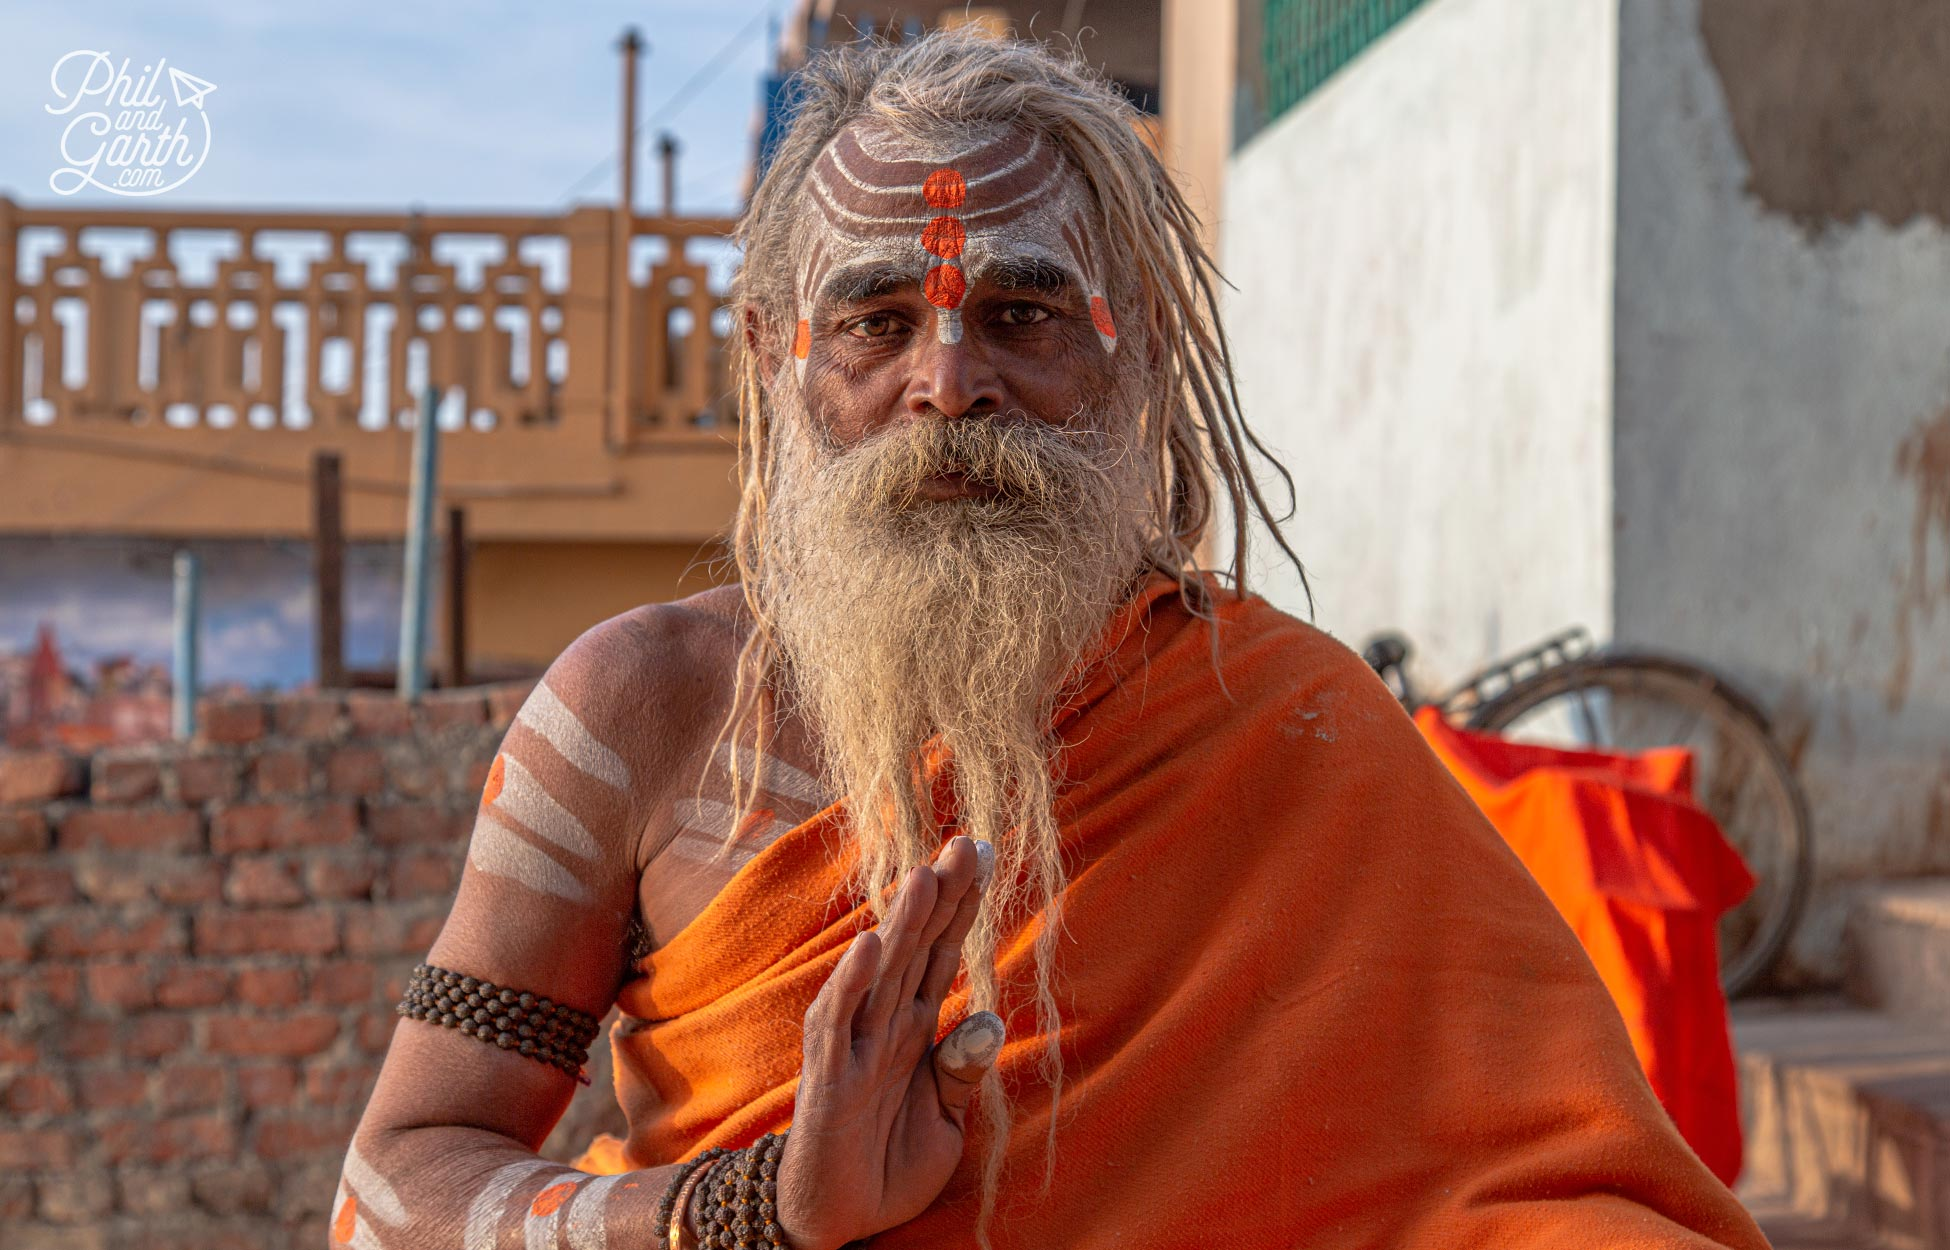 Sadhus in Varanasi have said goodbye to possessions and family